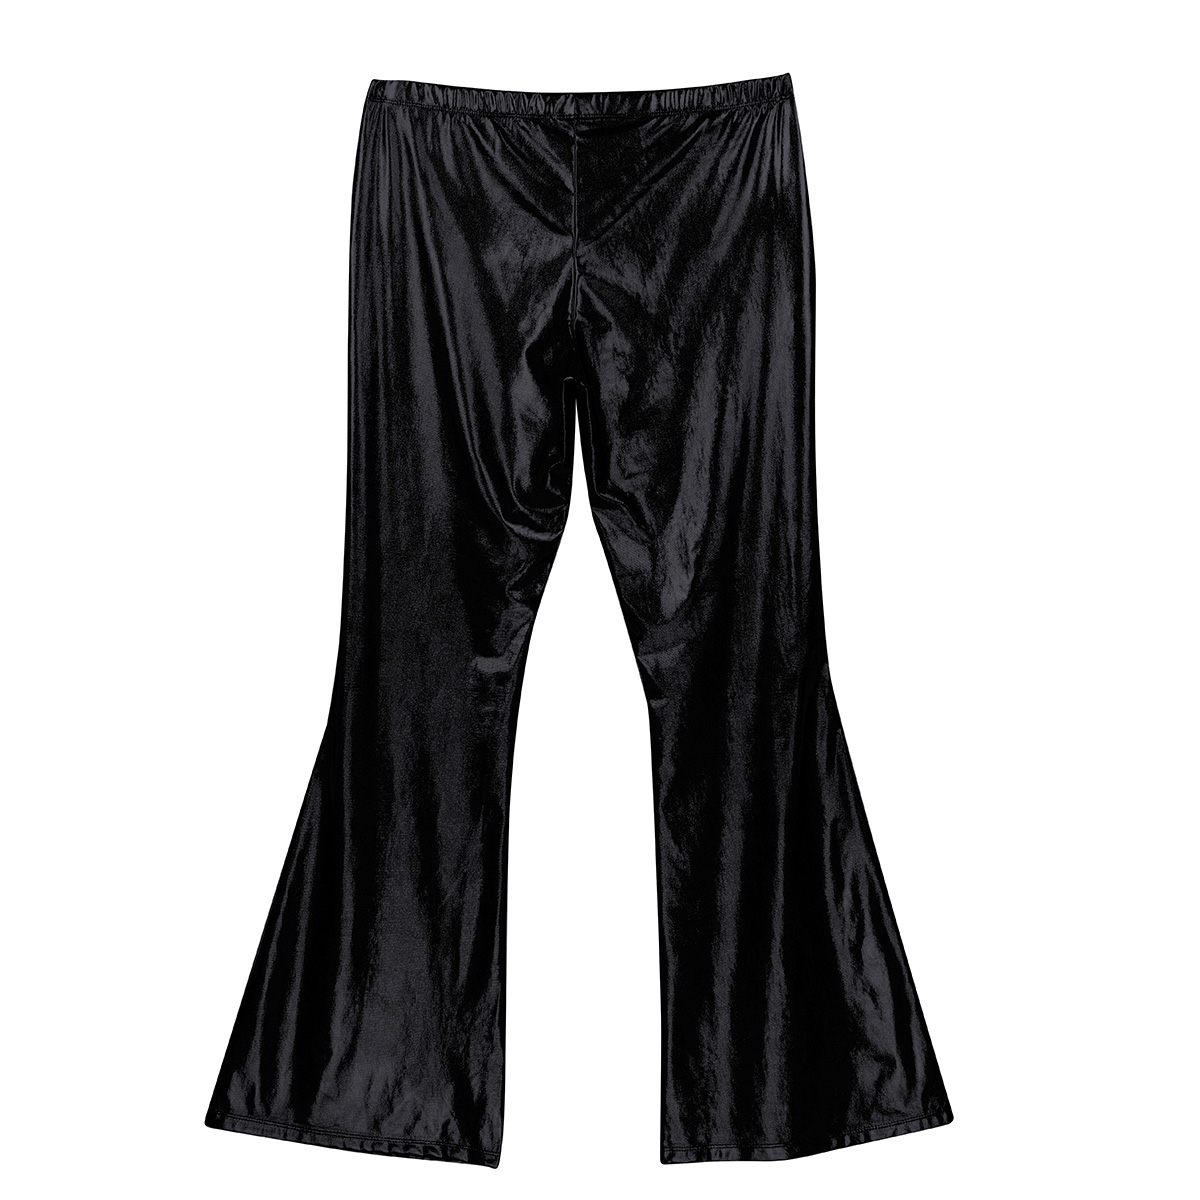 ChicTry Adults Mens Shiny Metallic Disco Pants with Bell Bottom Flared Long Pants Dude Costume Trousers for 70's Theme Parties 19